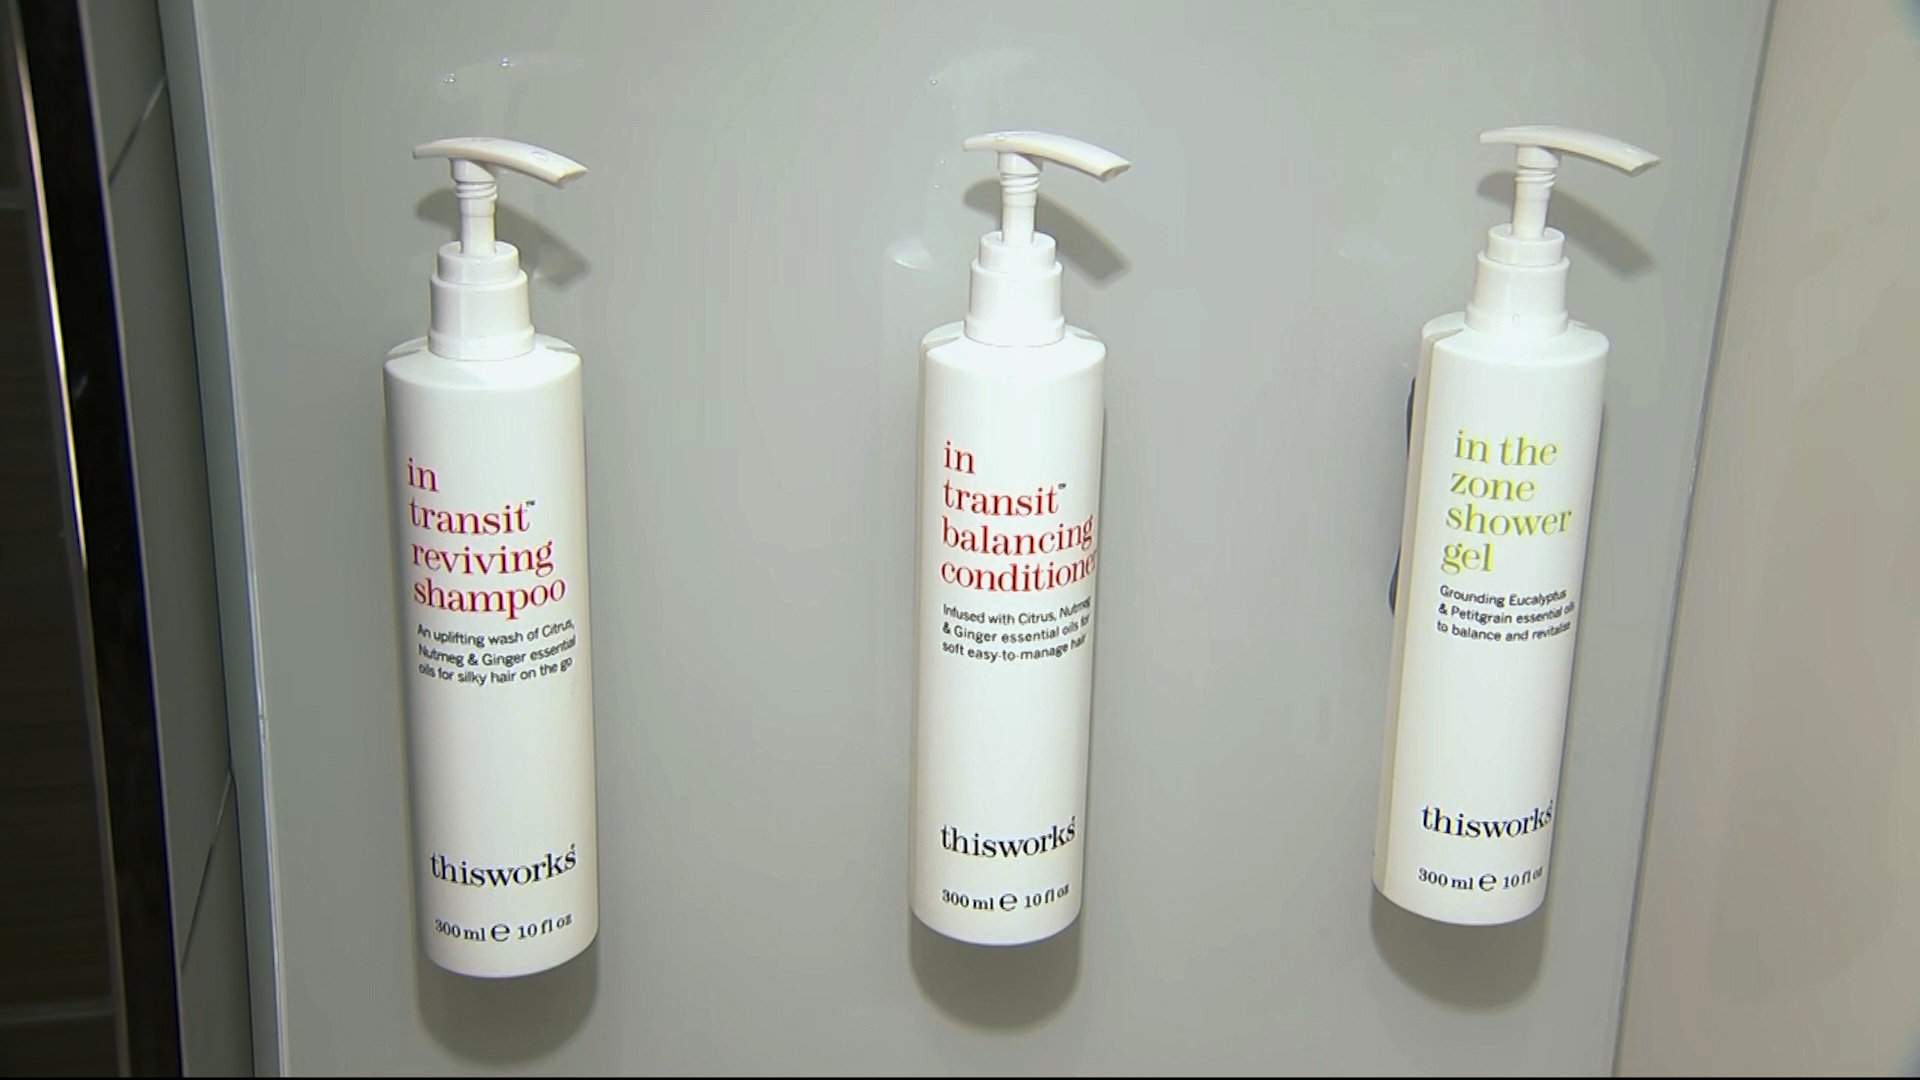 This image made from video shows bottles of shampoo, conditioner and shower gel that will replace smaller bottles of them by 2021, filmed at Marriott's headquarters in Bethesda, Maryland.